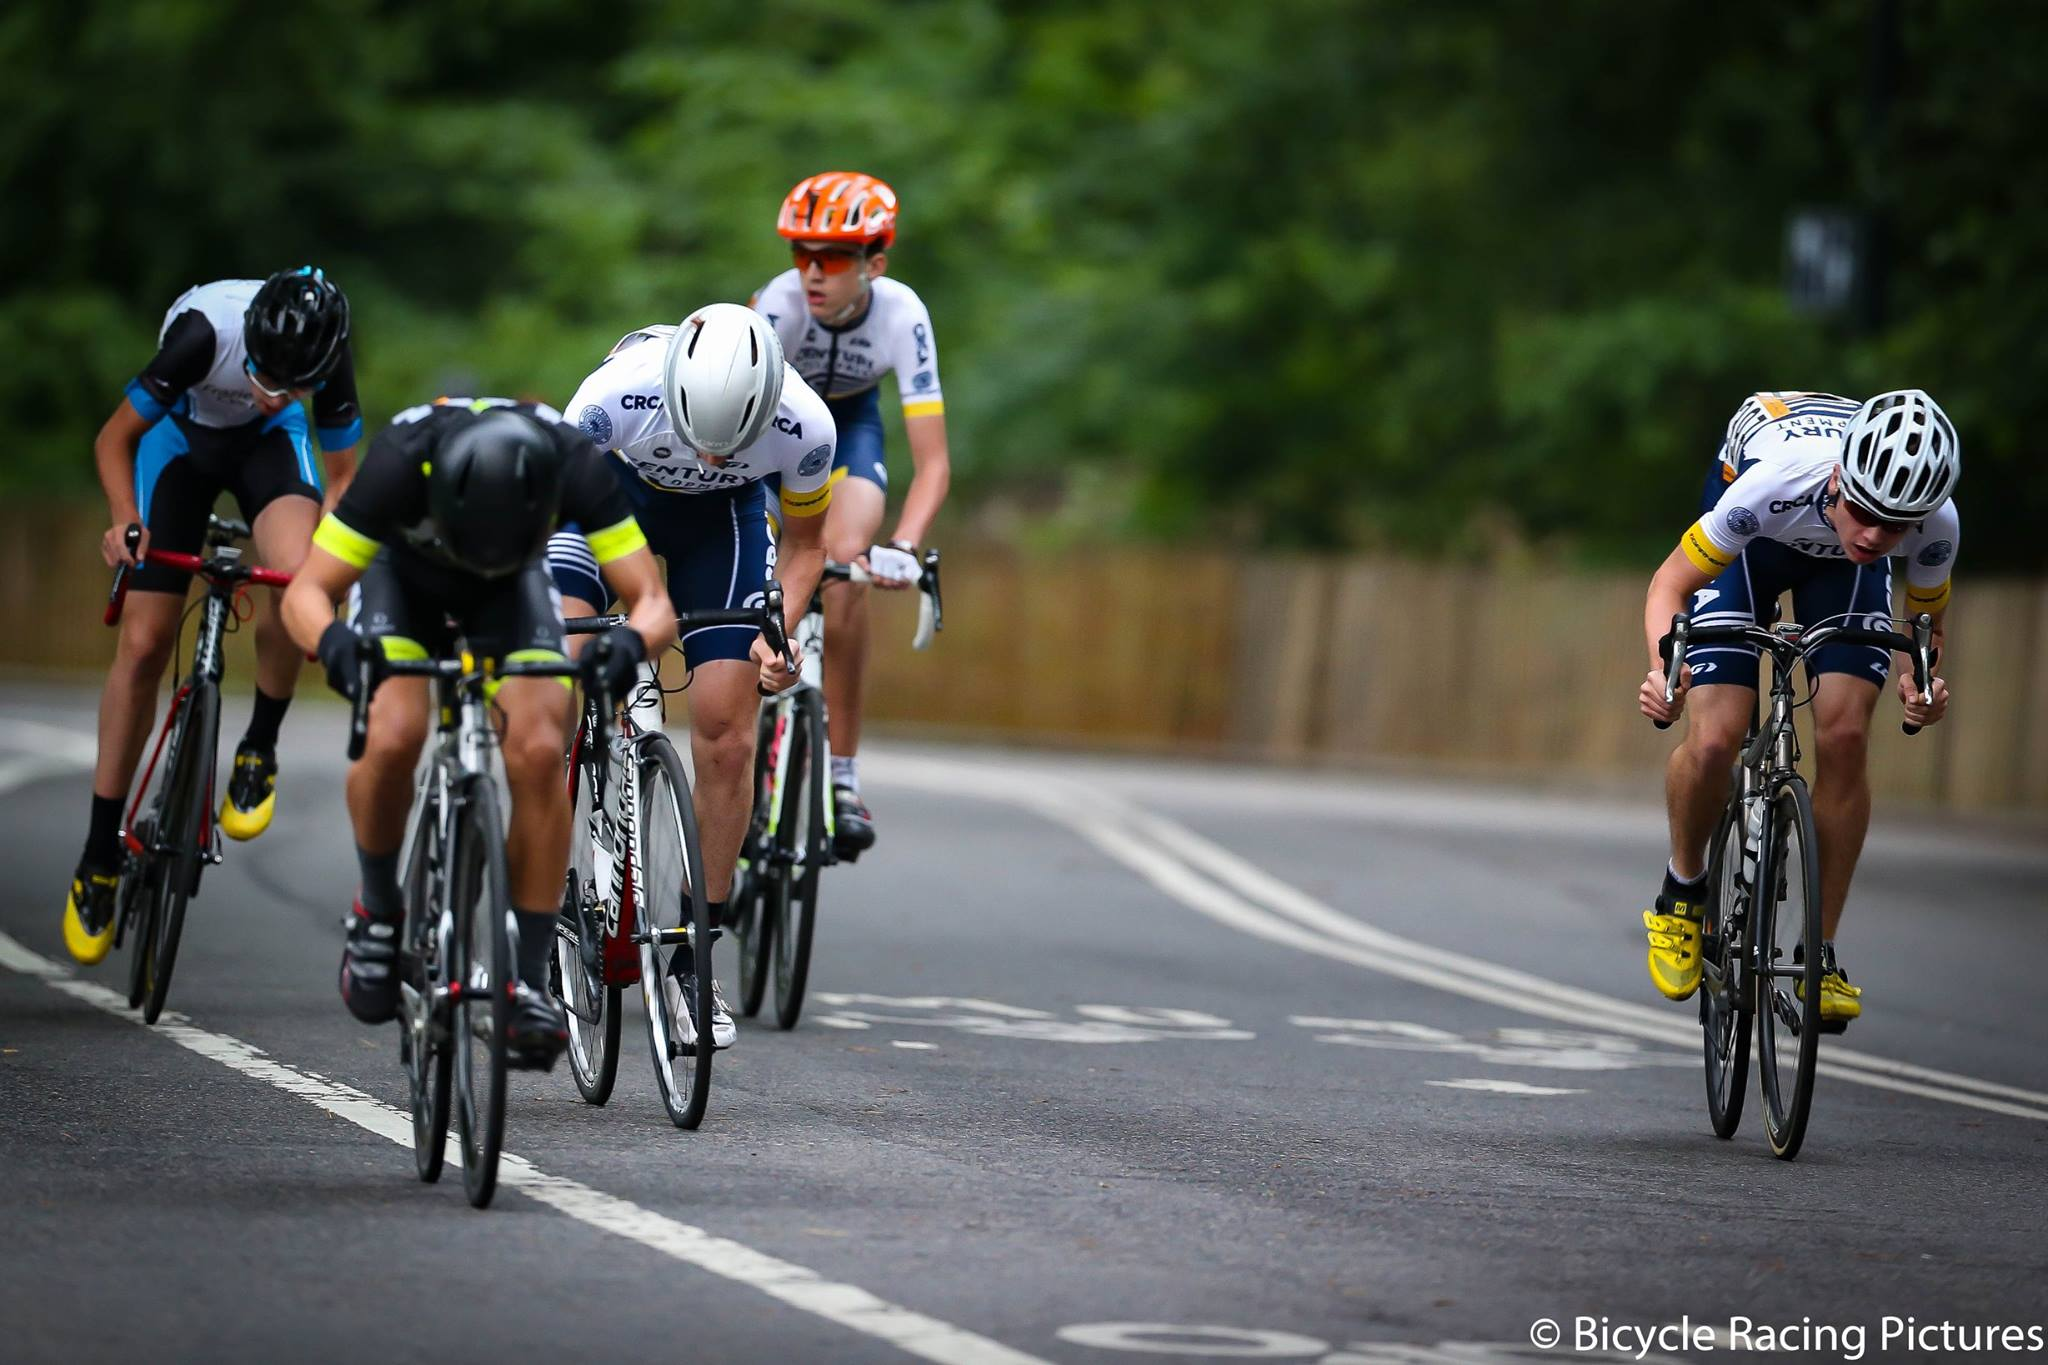 Photo by  Bicycle Racing Pictures